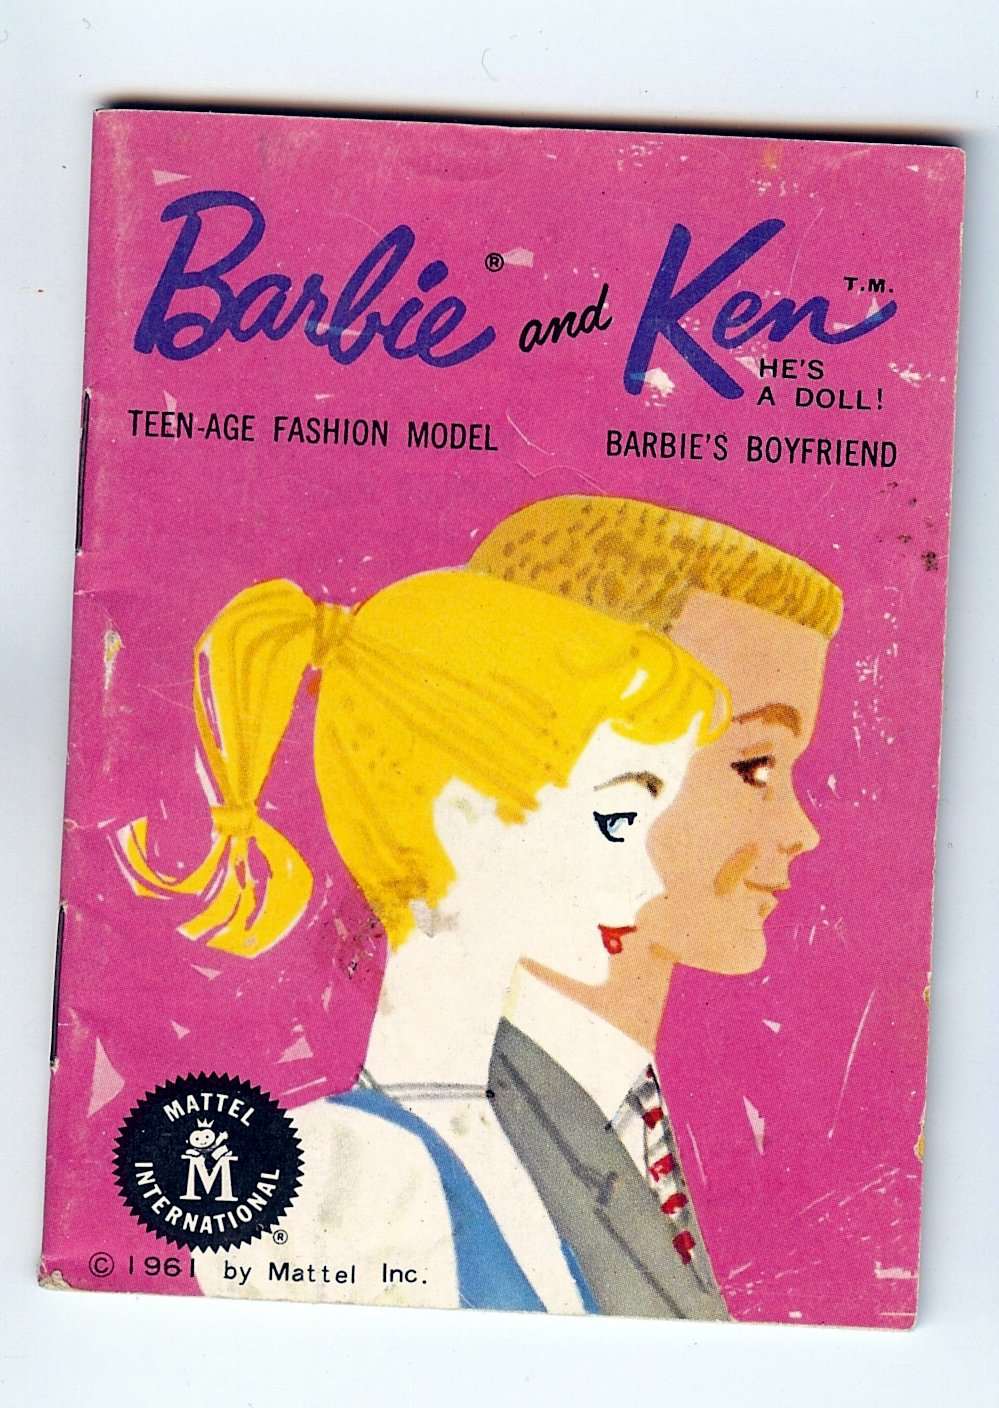 Barbie Teen-Age Fashion Model and Ken He's a Doll Barbie's Boyfriend